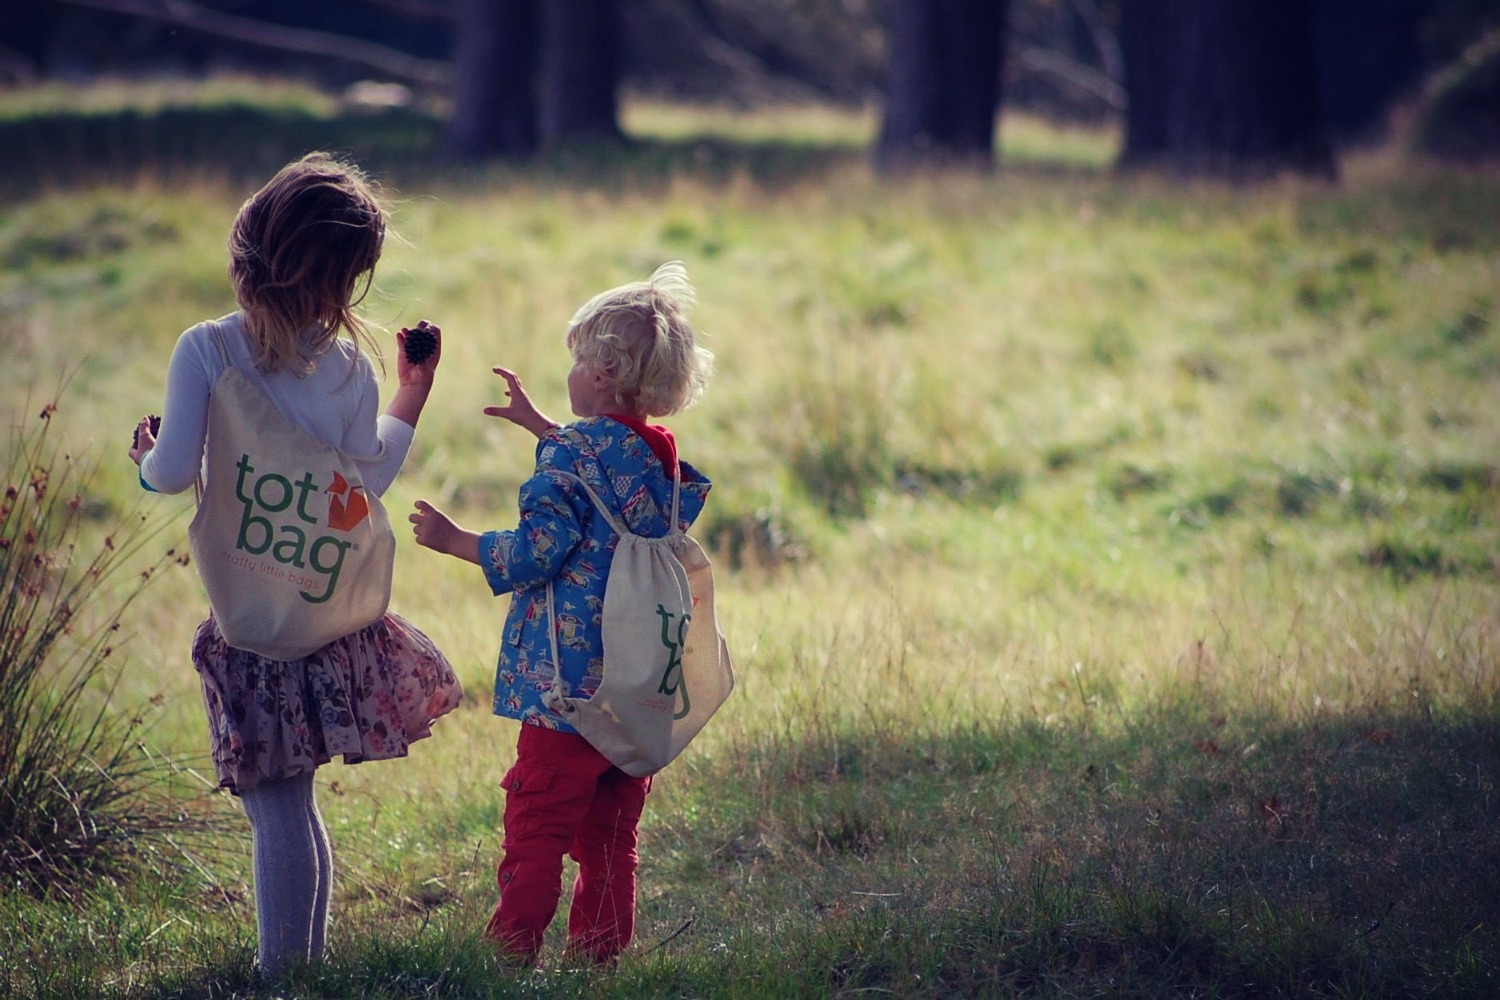 TOTBAG – A GREAT ACTIVITY FOR LITTLE EXPLORERS